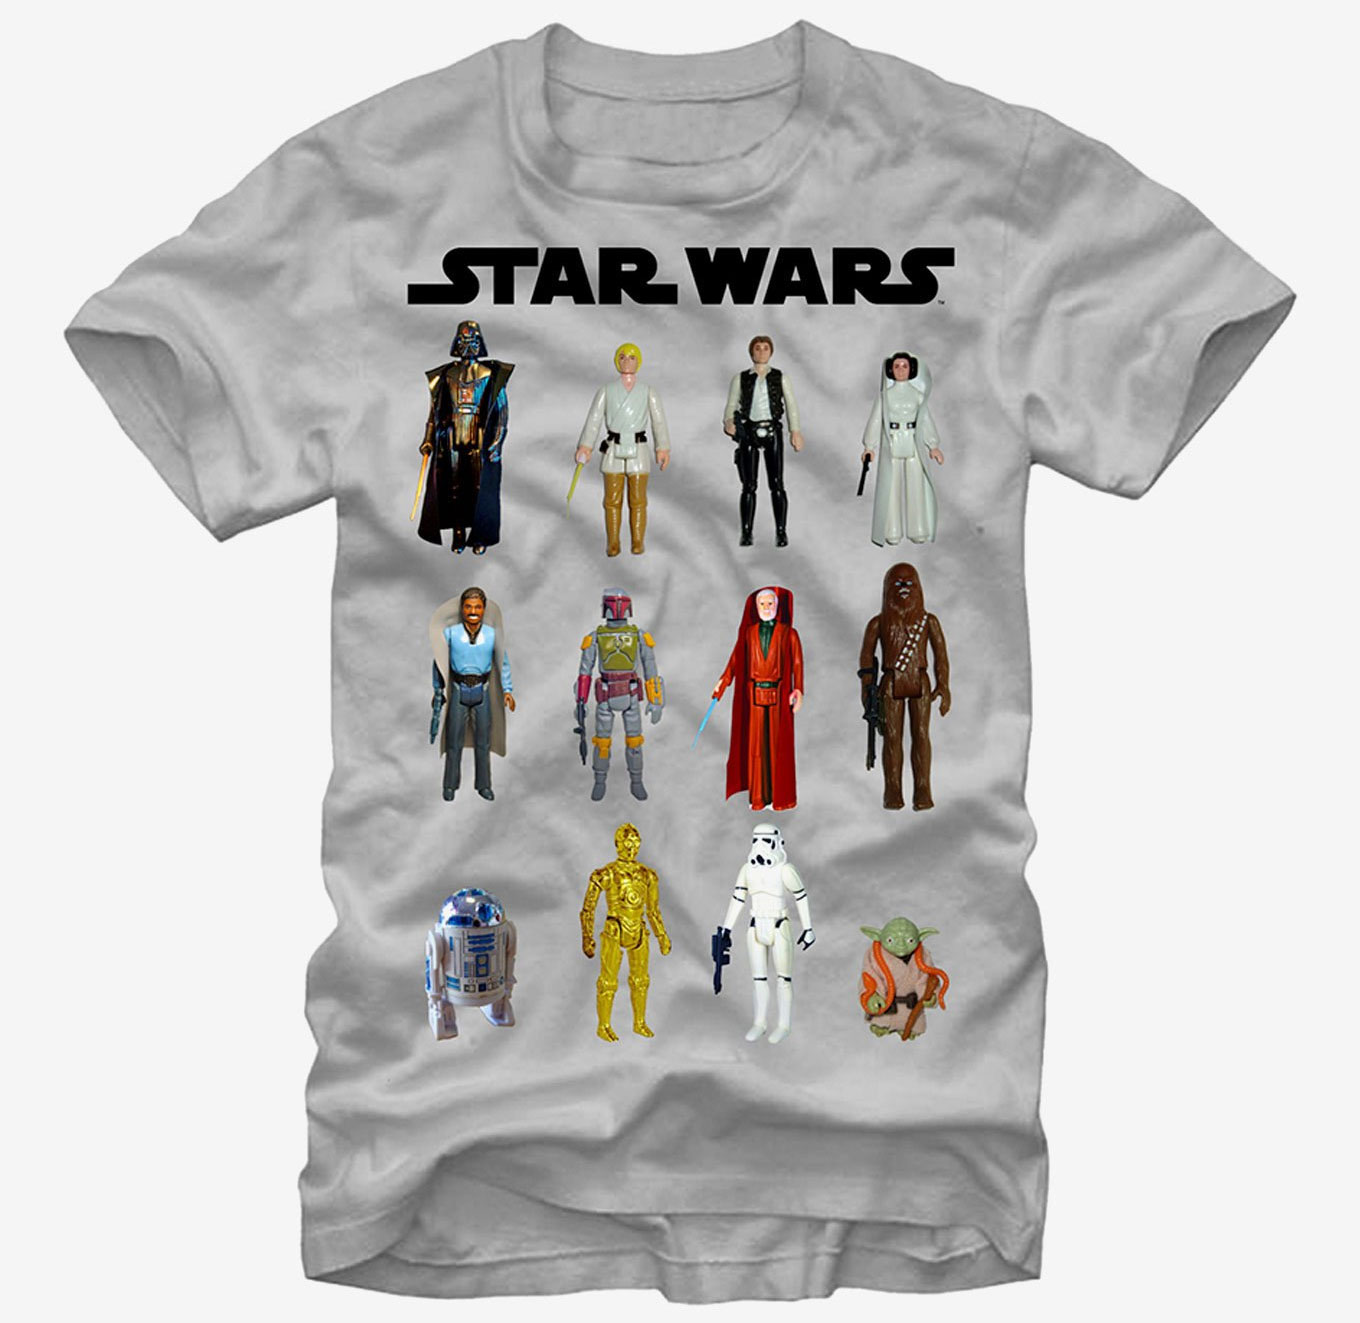 Kenner Star Wars TShirt